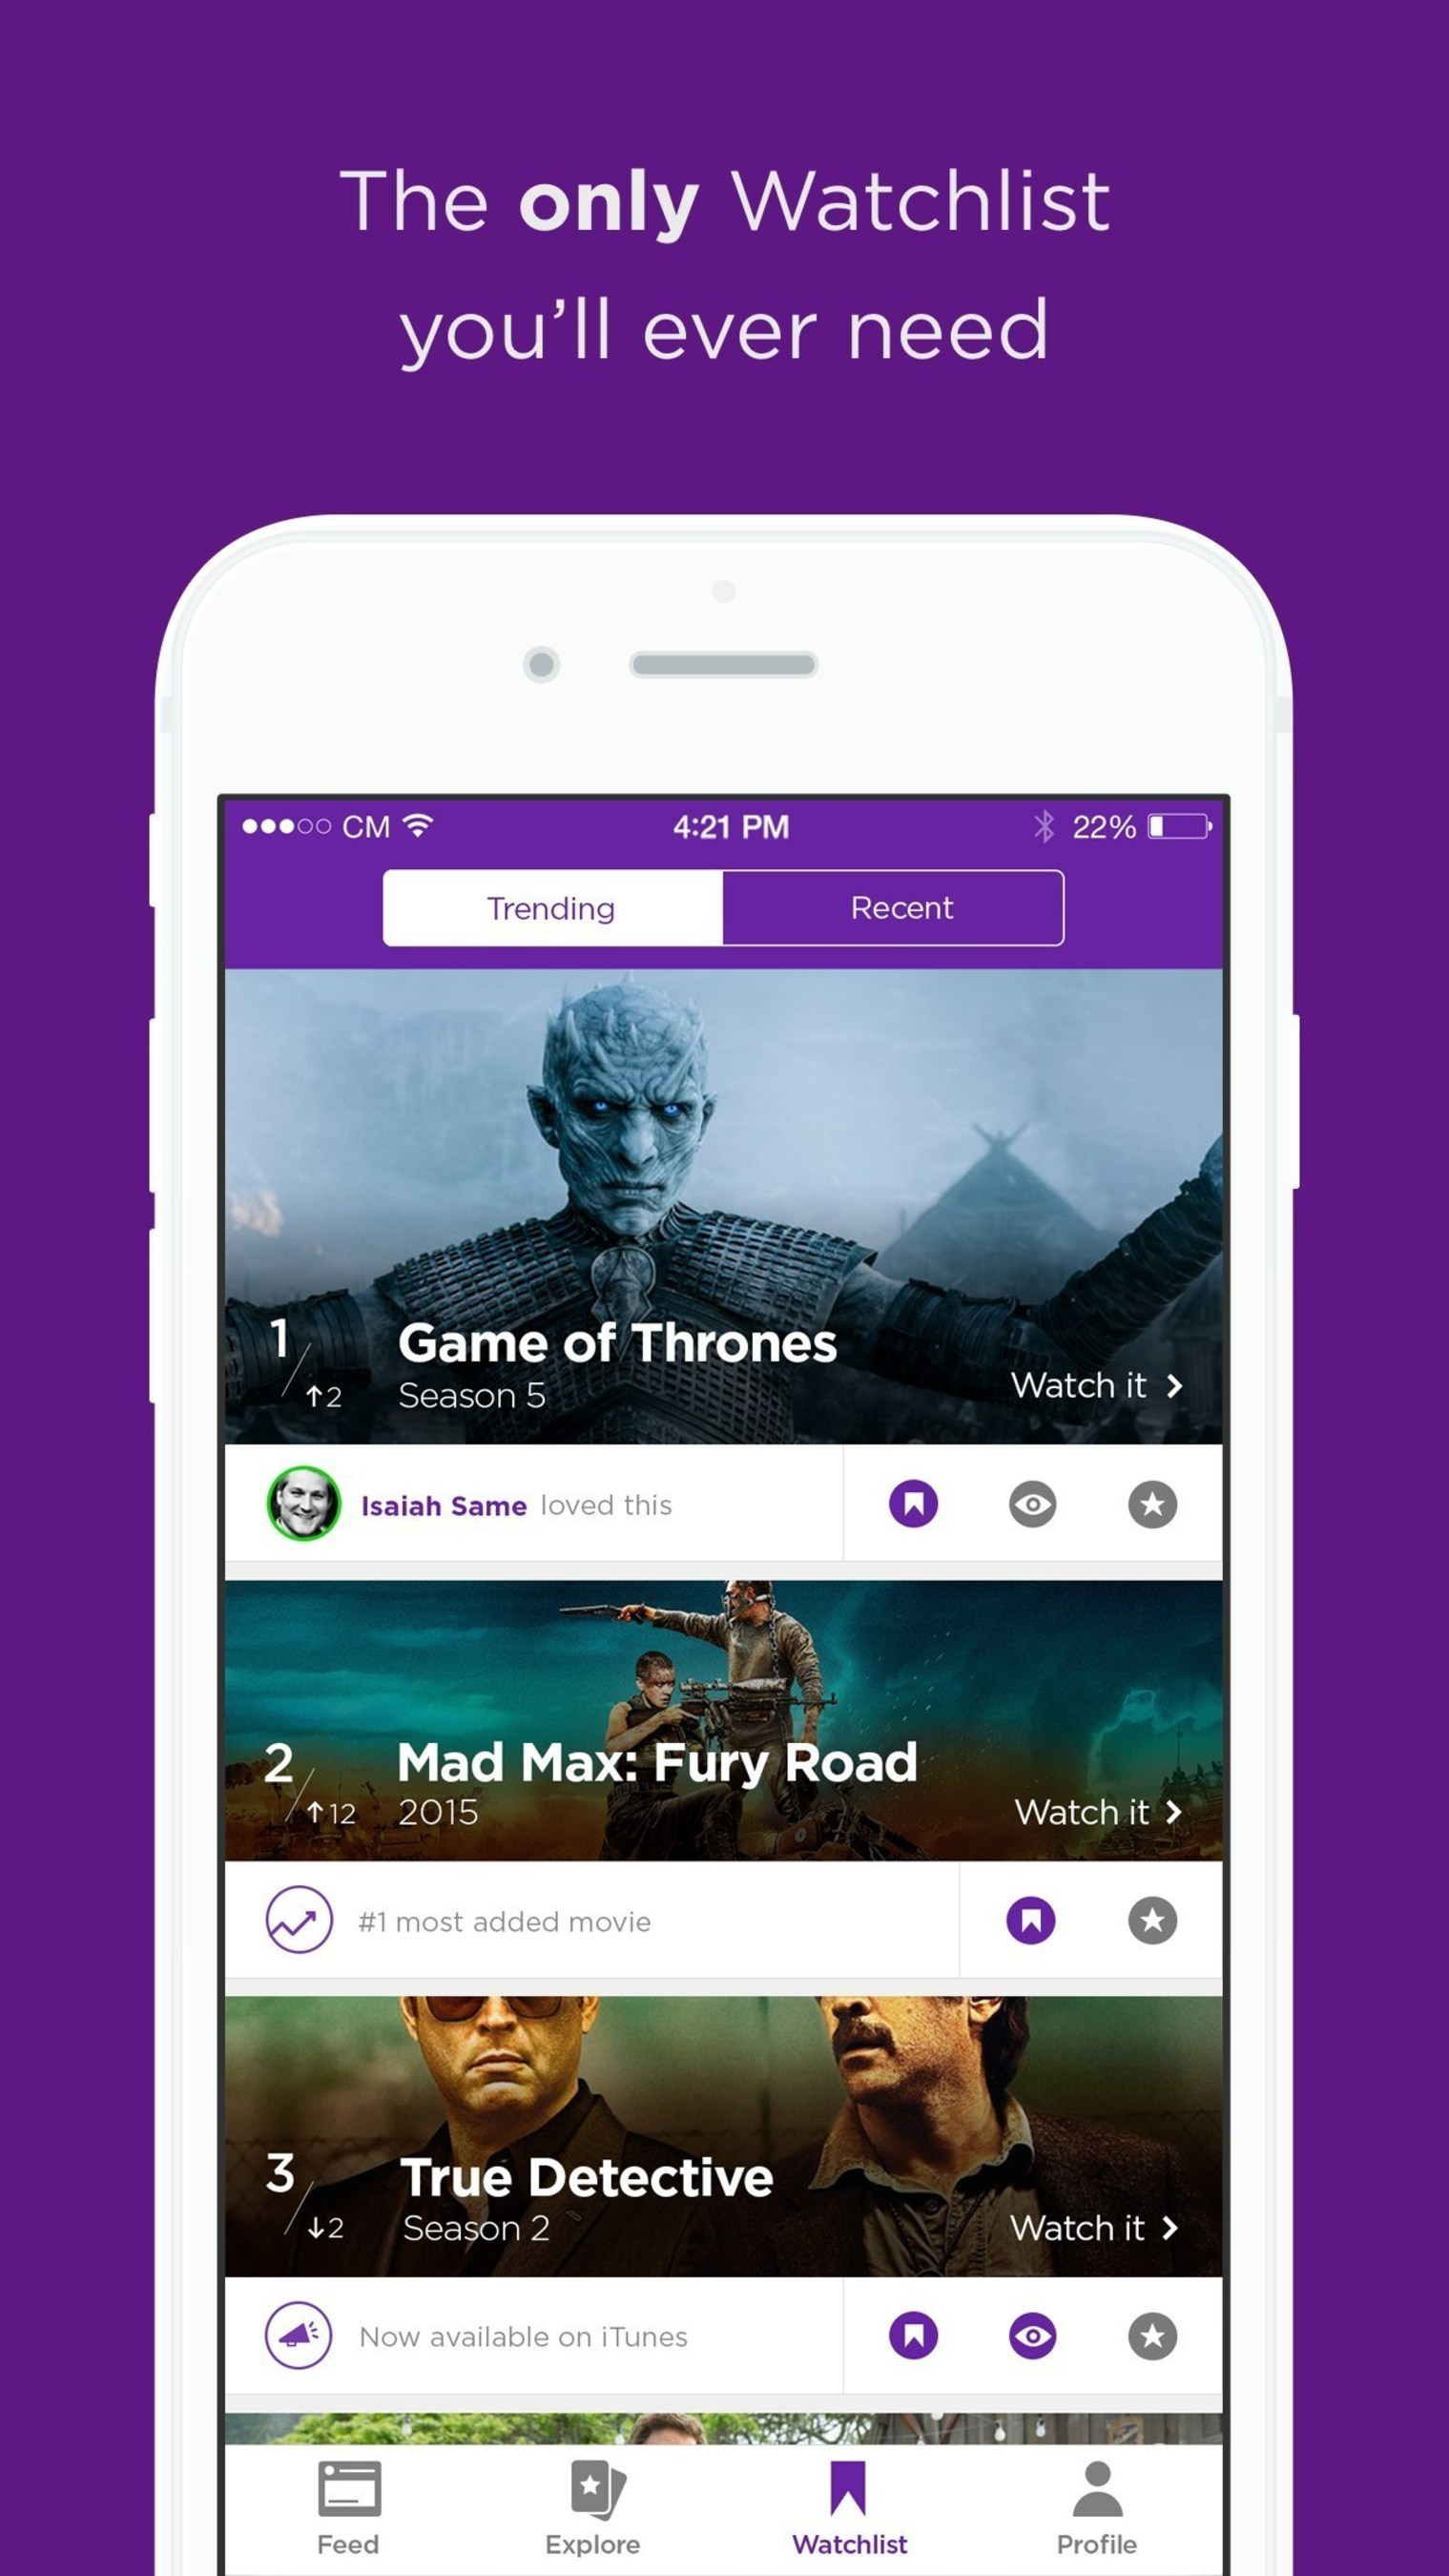 The Legit app helps users select movies to watch (or avoid) based on their friends' recommendations and ratings.